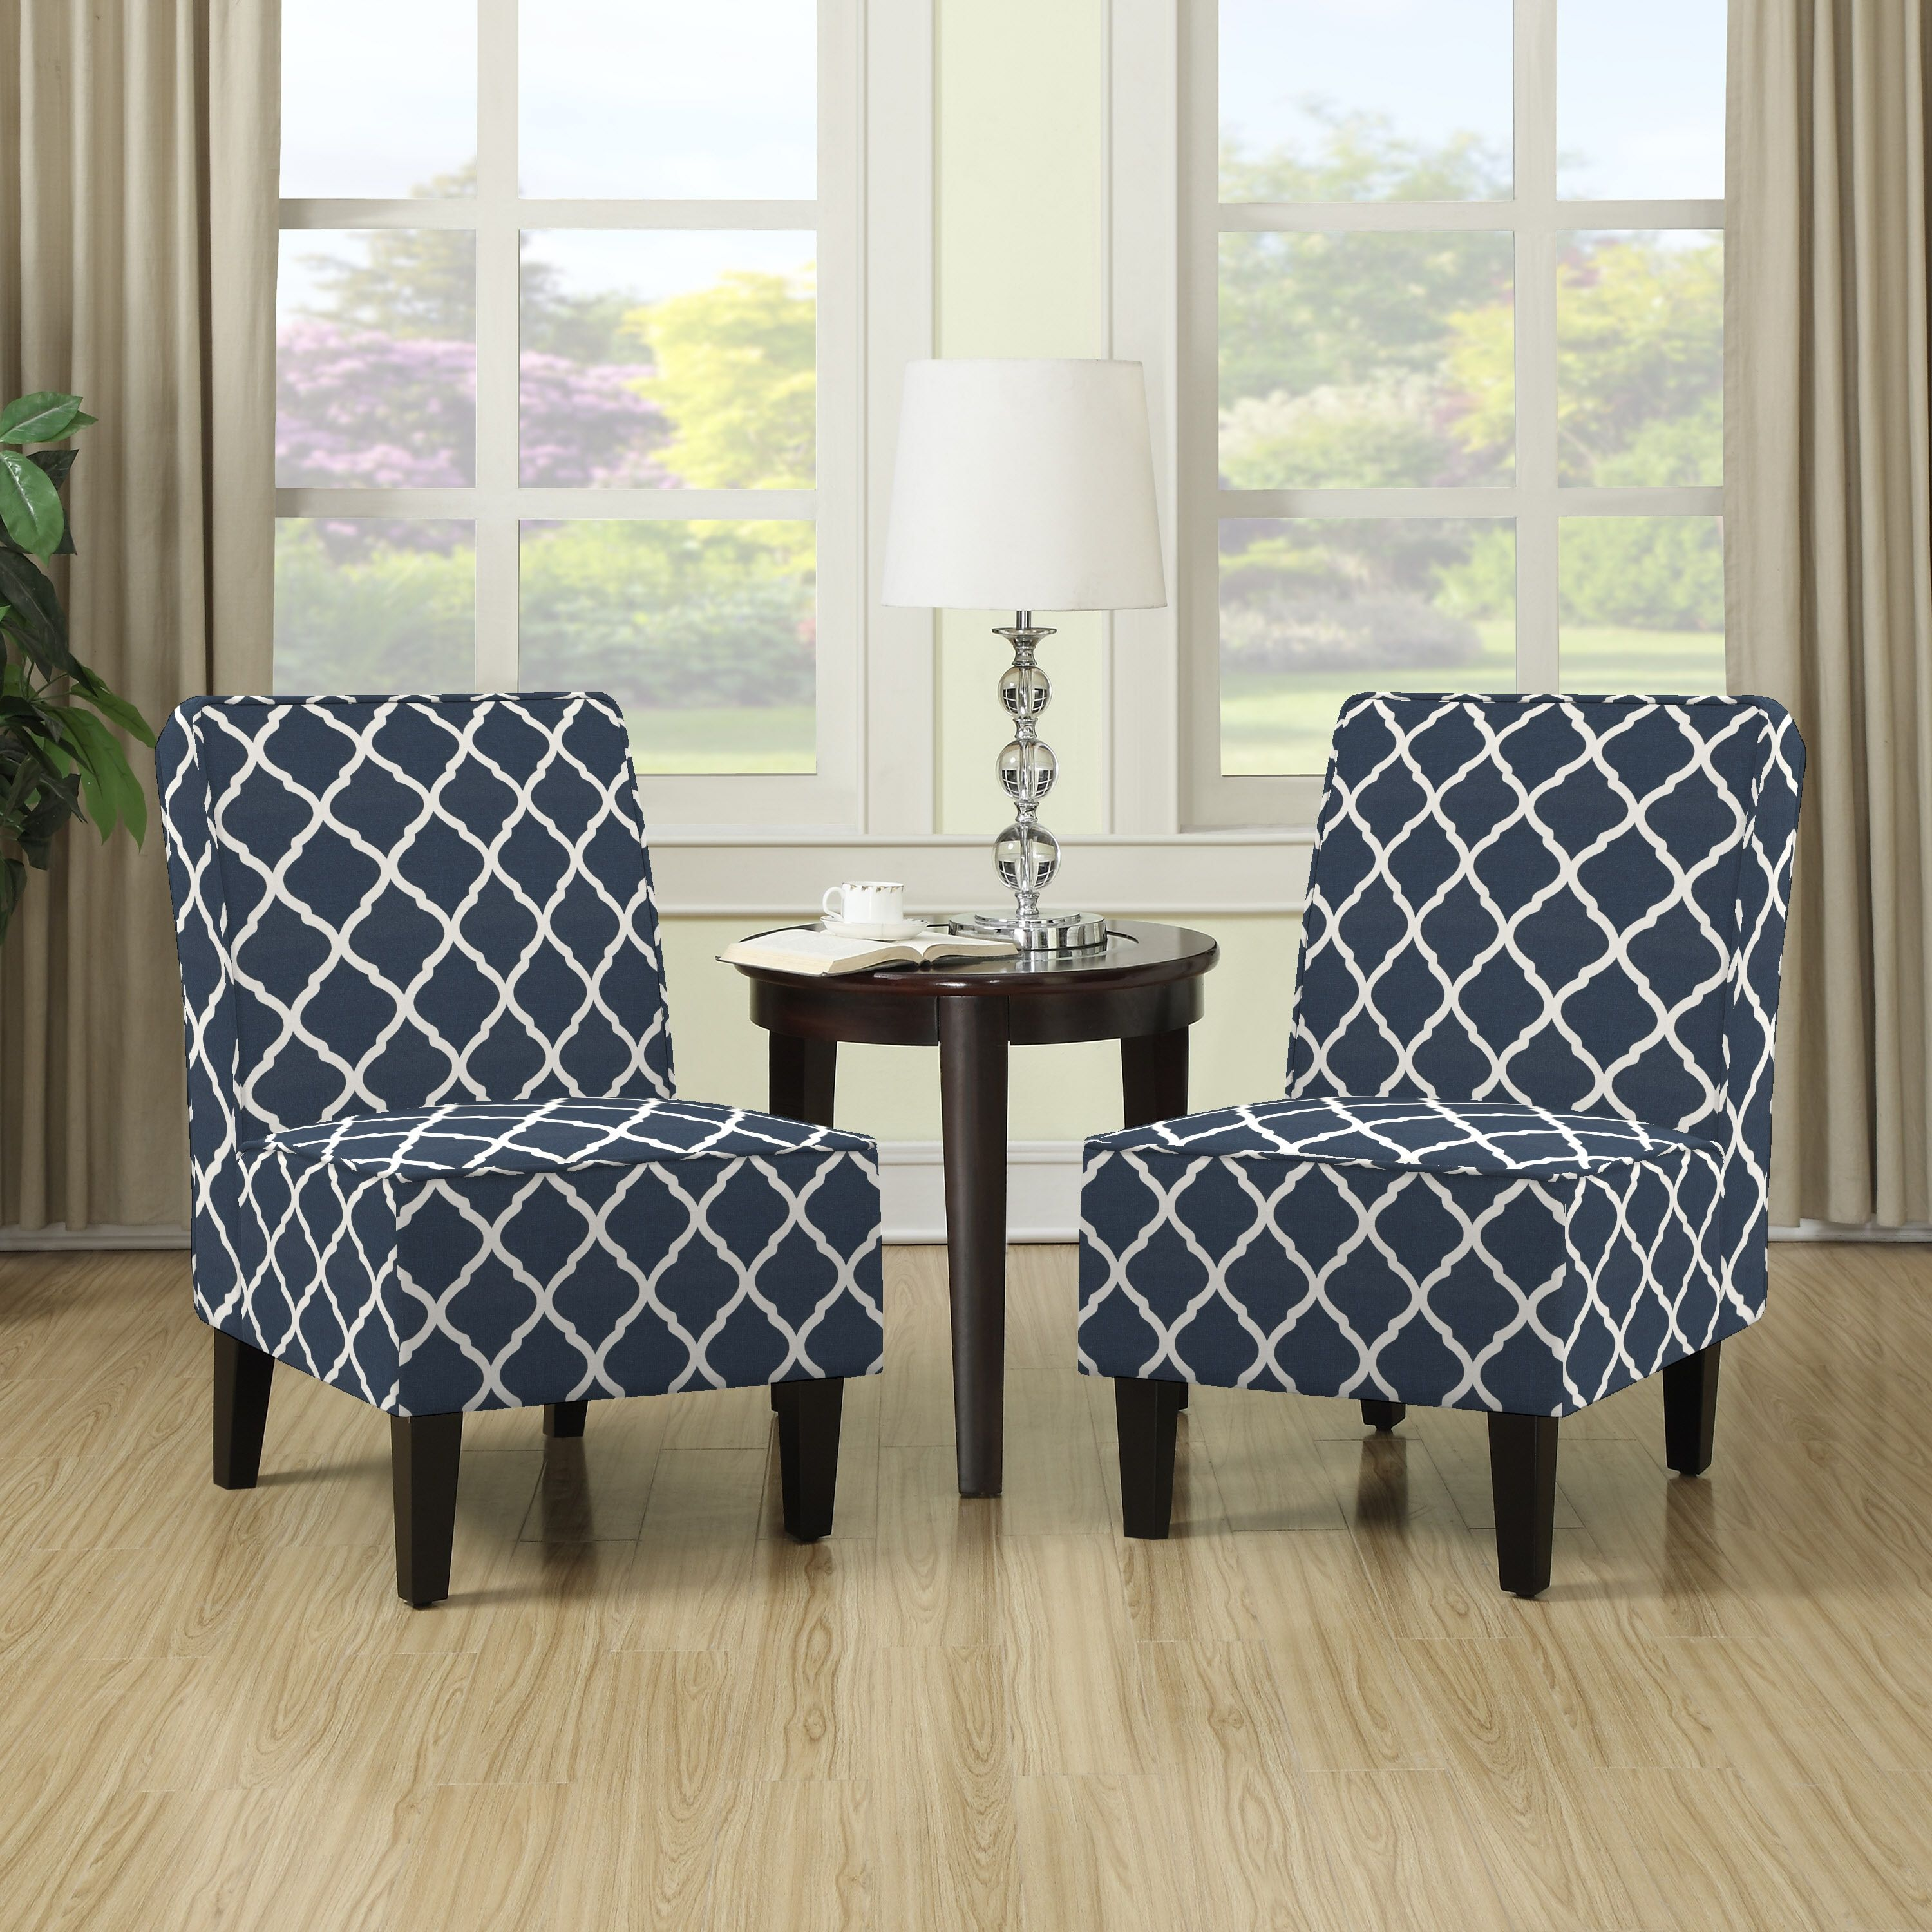 living room chairs create an inviting atmosphere with new living